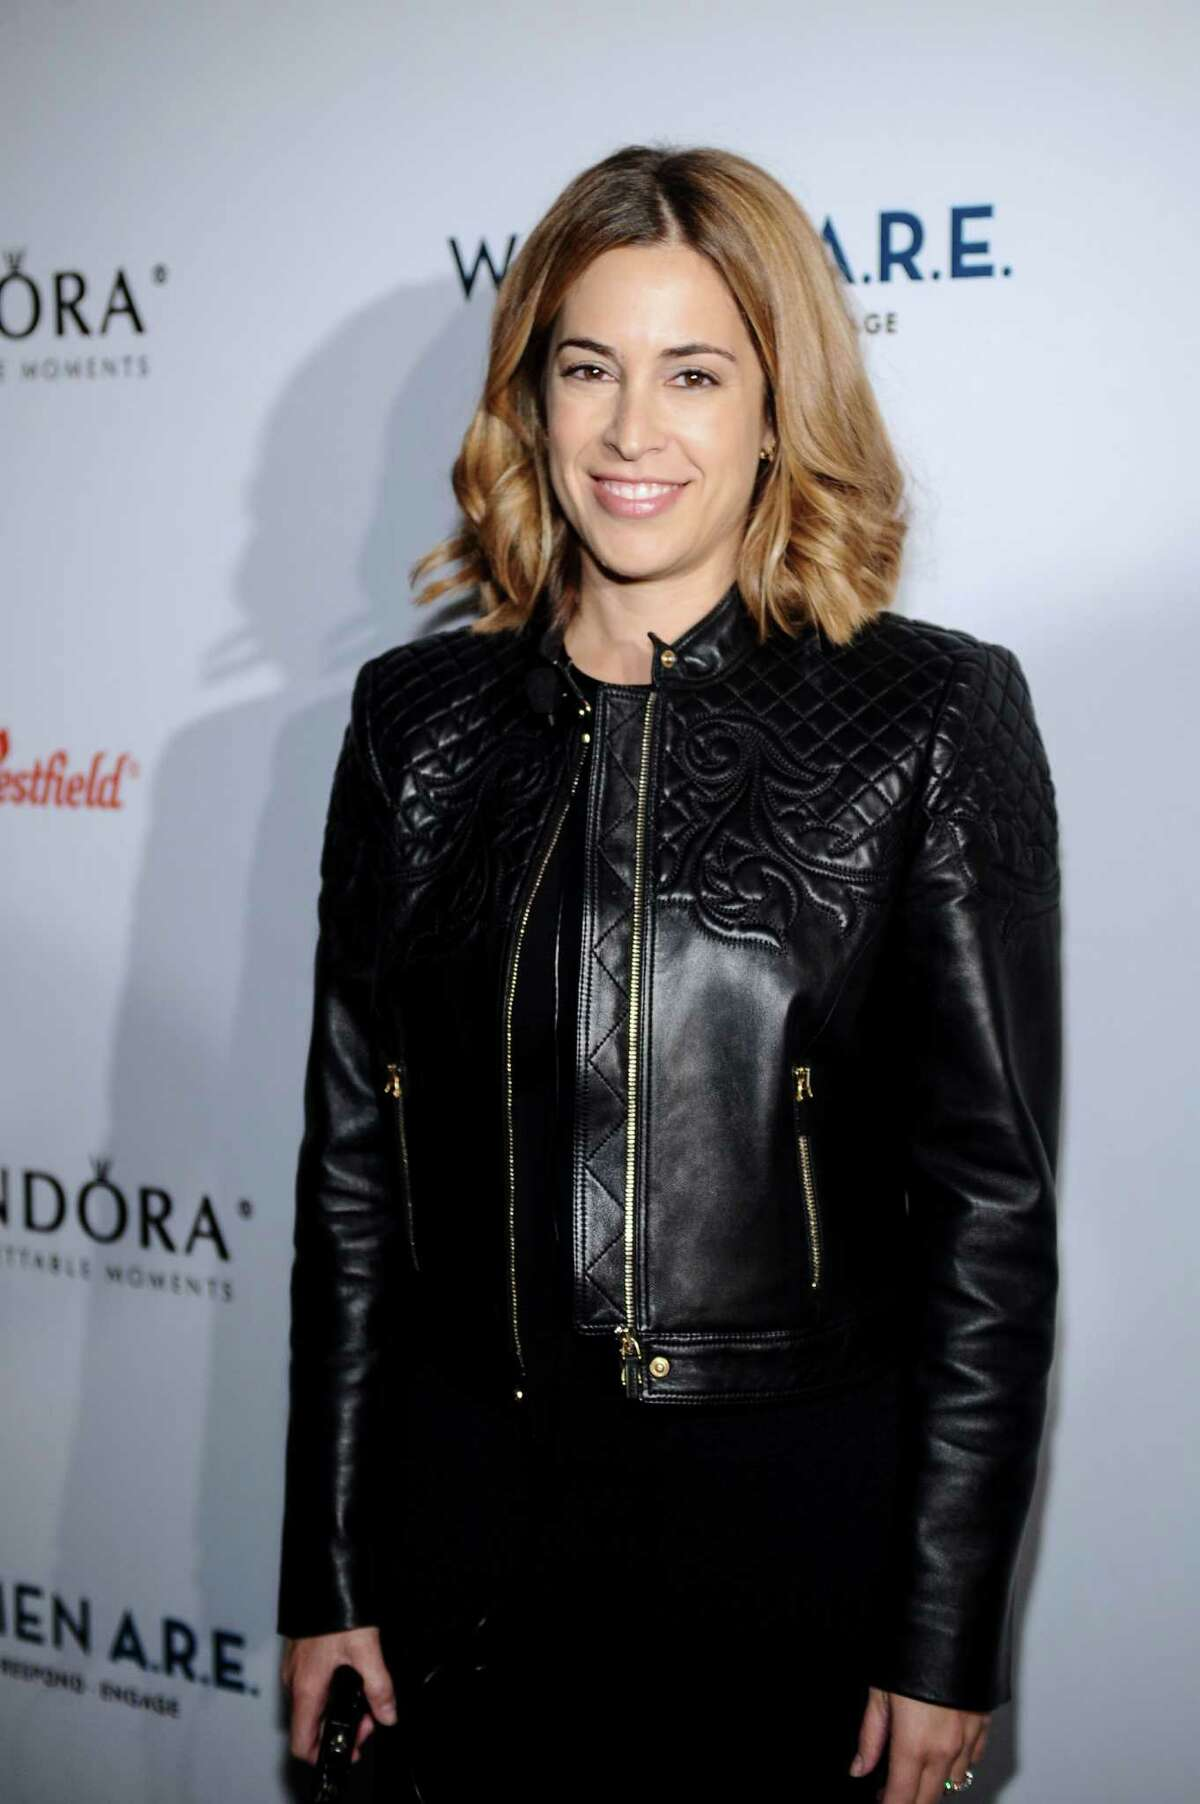 Alison Pincus, co-founder of One Kings Lane, attends WOMEN A.R.E Inaugural Summit Presented By PANDORA at SLS Hotel on November 7, 2013 in Beverly Hills, California.